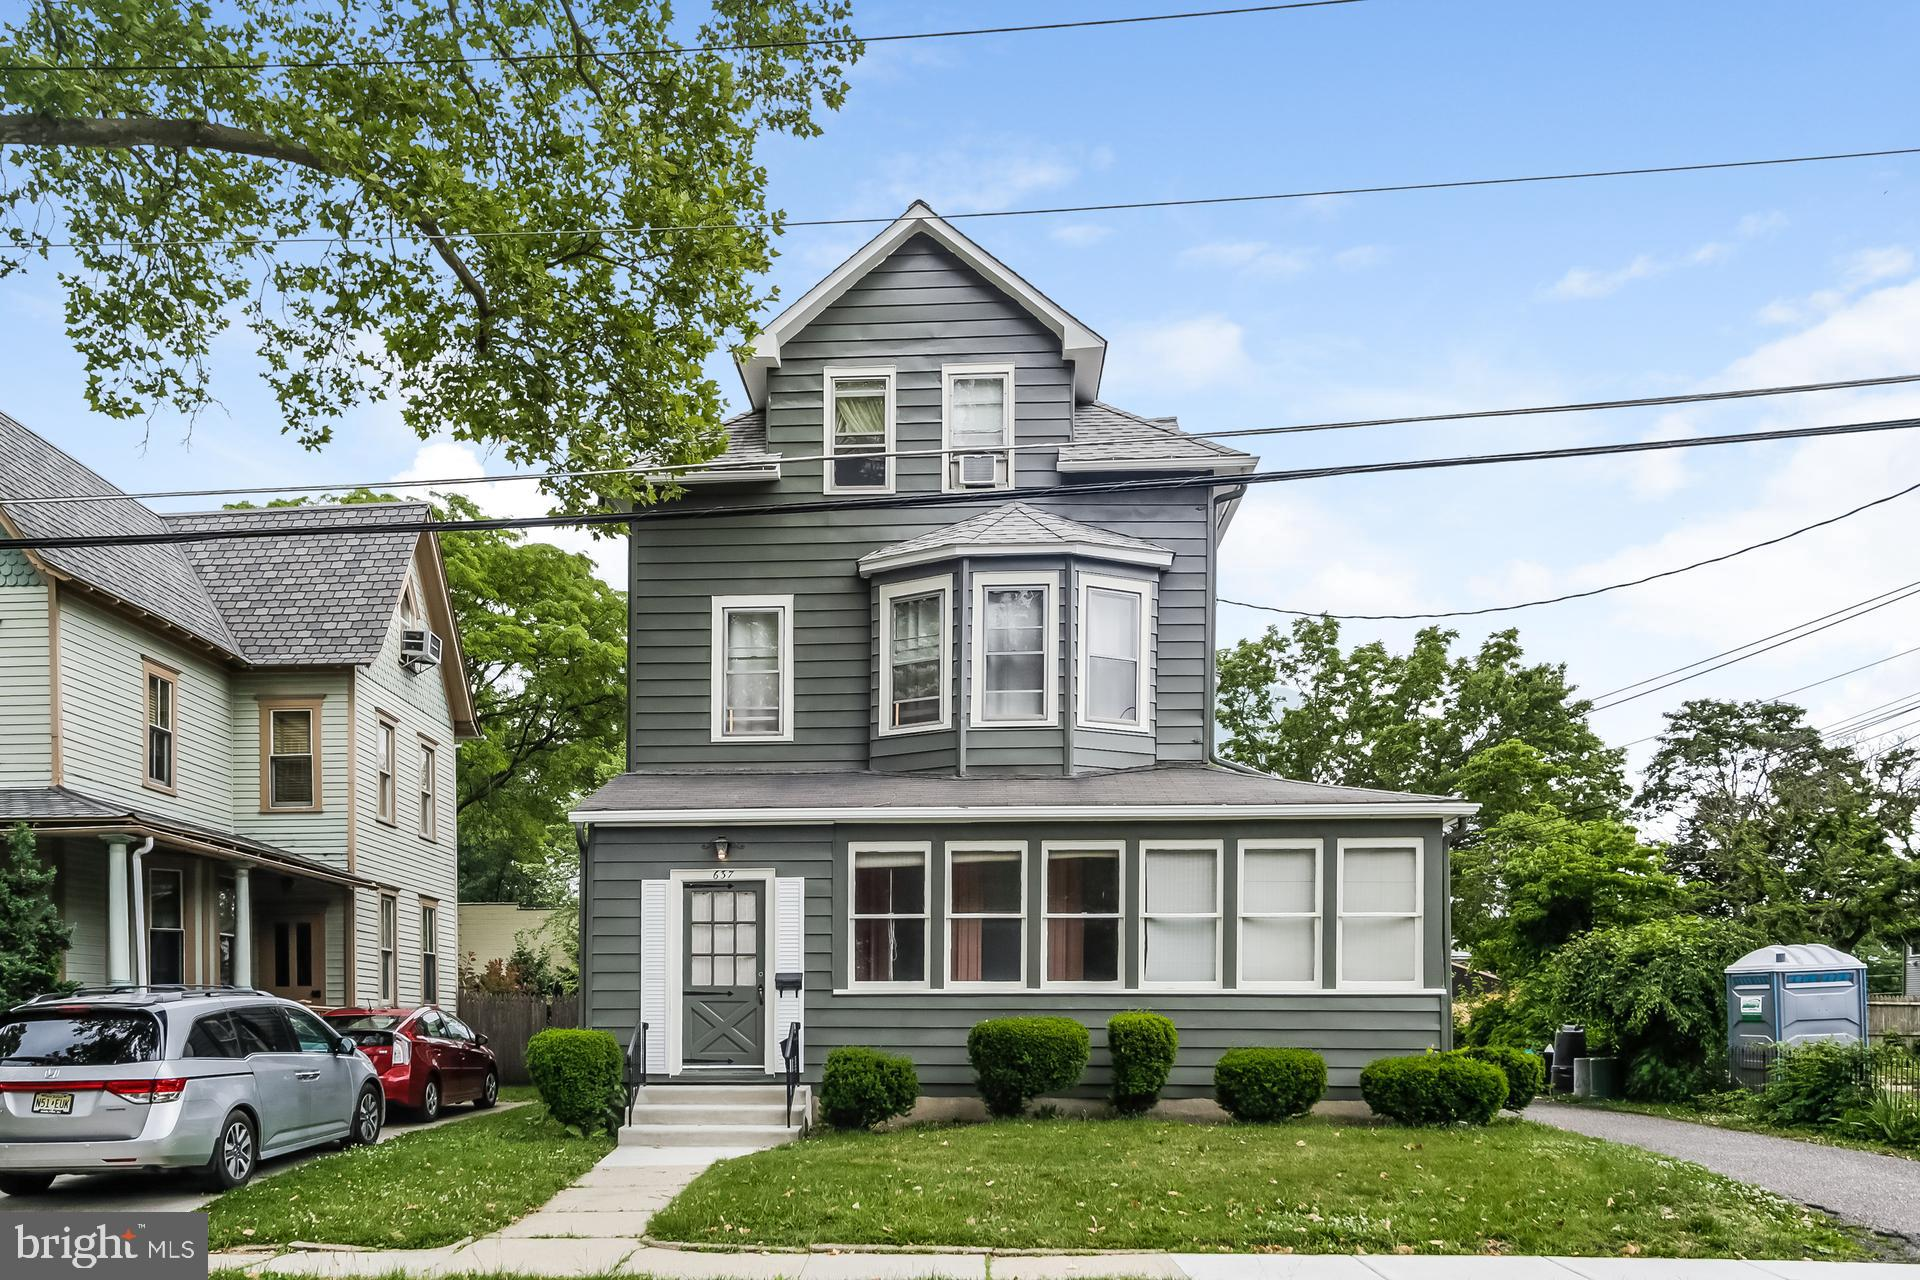 637 PARK AVENUE, COLLINGSWOOD, NJ 08108